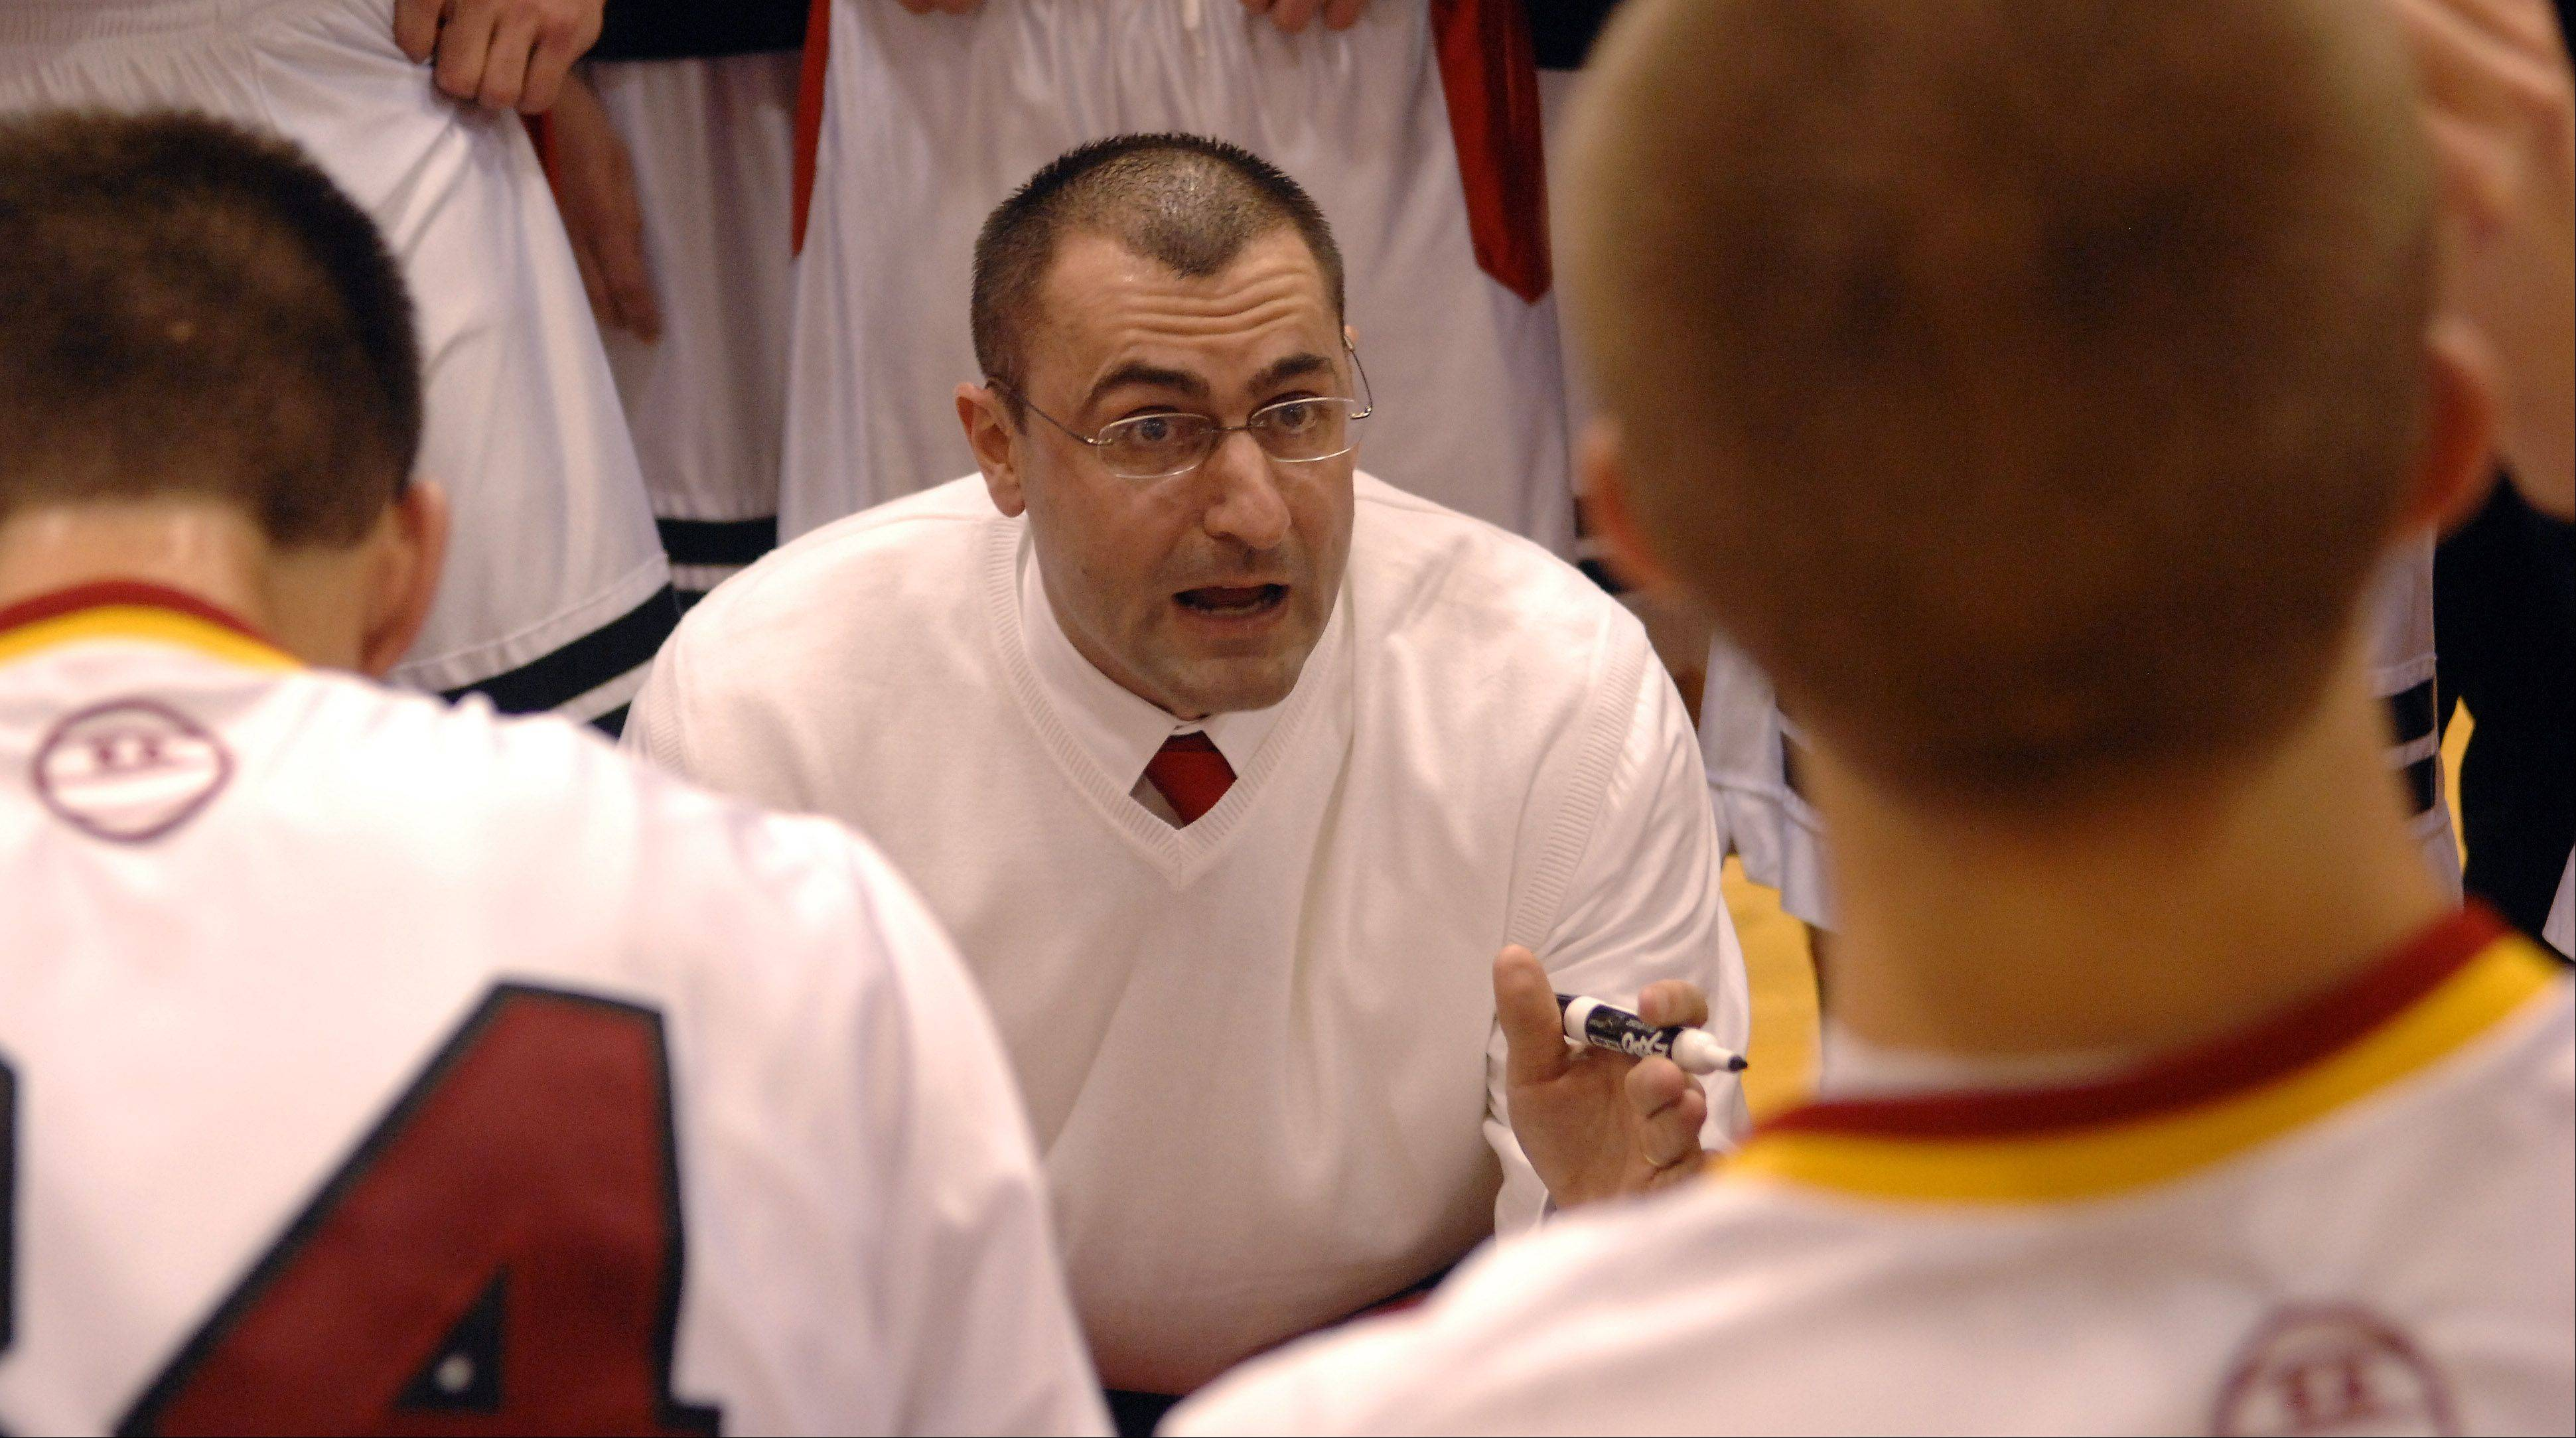 Batavia head coach Jim Nazos talks to his players between periods against Kaneland during Wednesday's game at Batavia.